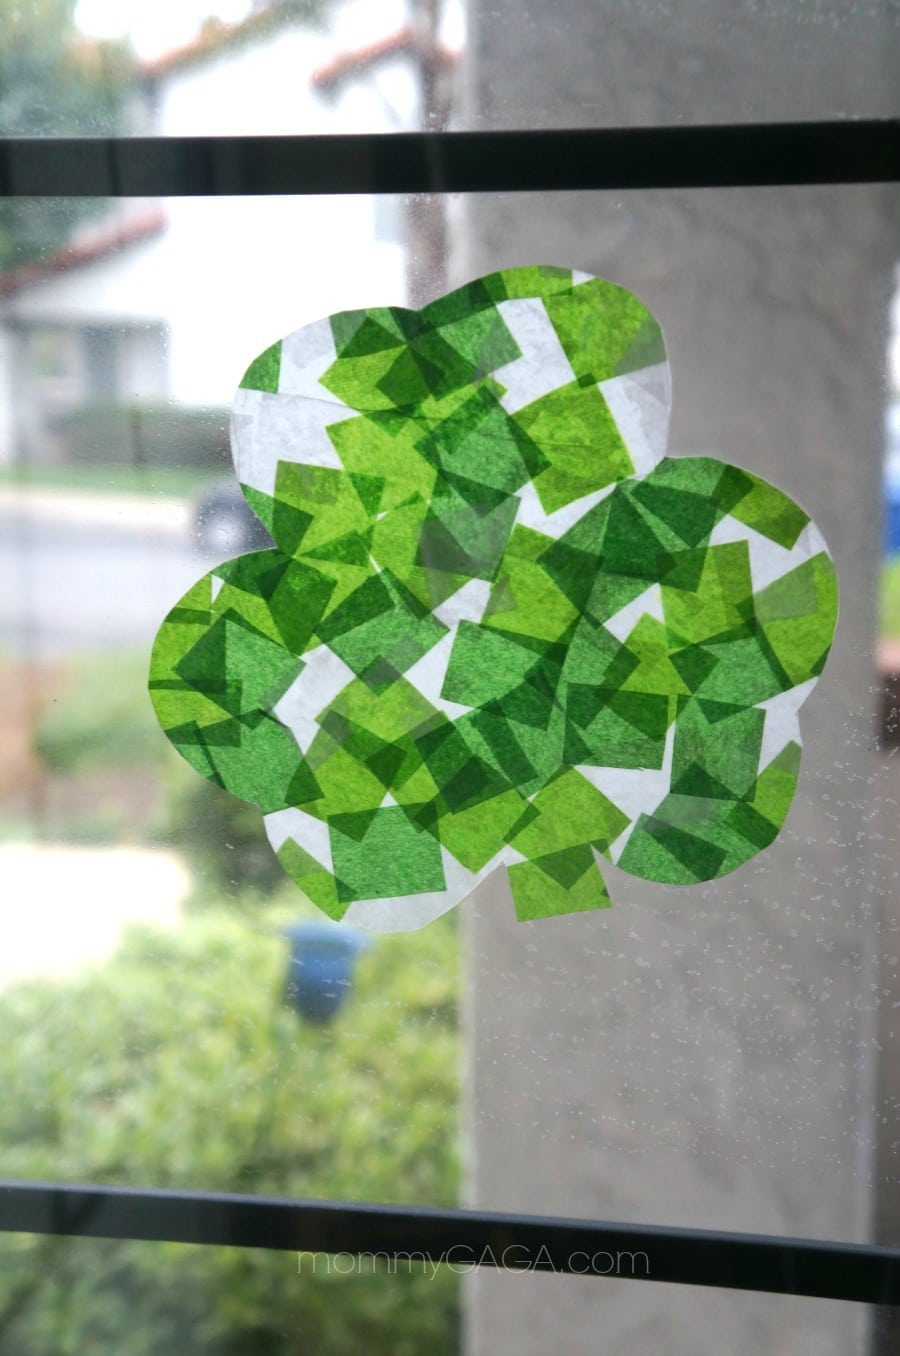 St-Patricks-Day-Crafts-for-Kids-Stained-Glass-Tissue-Paper-Shamrocks